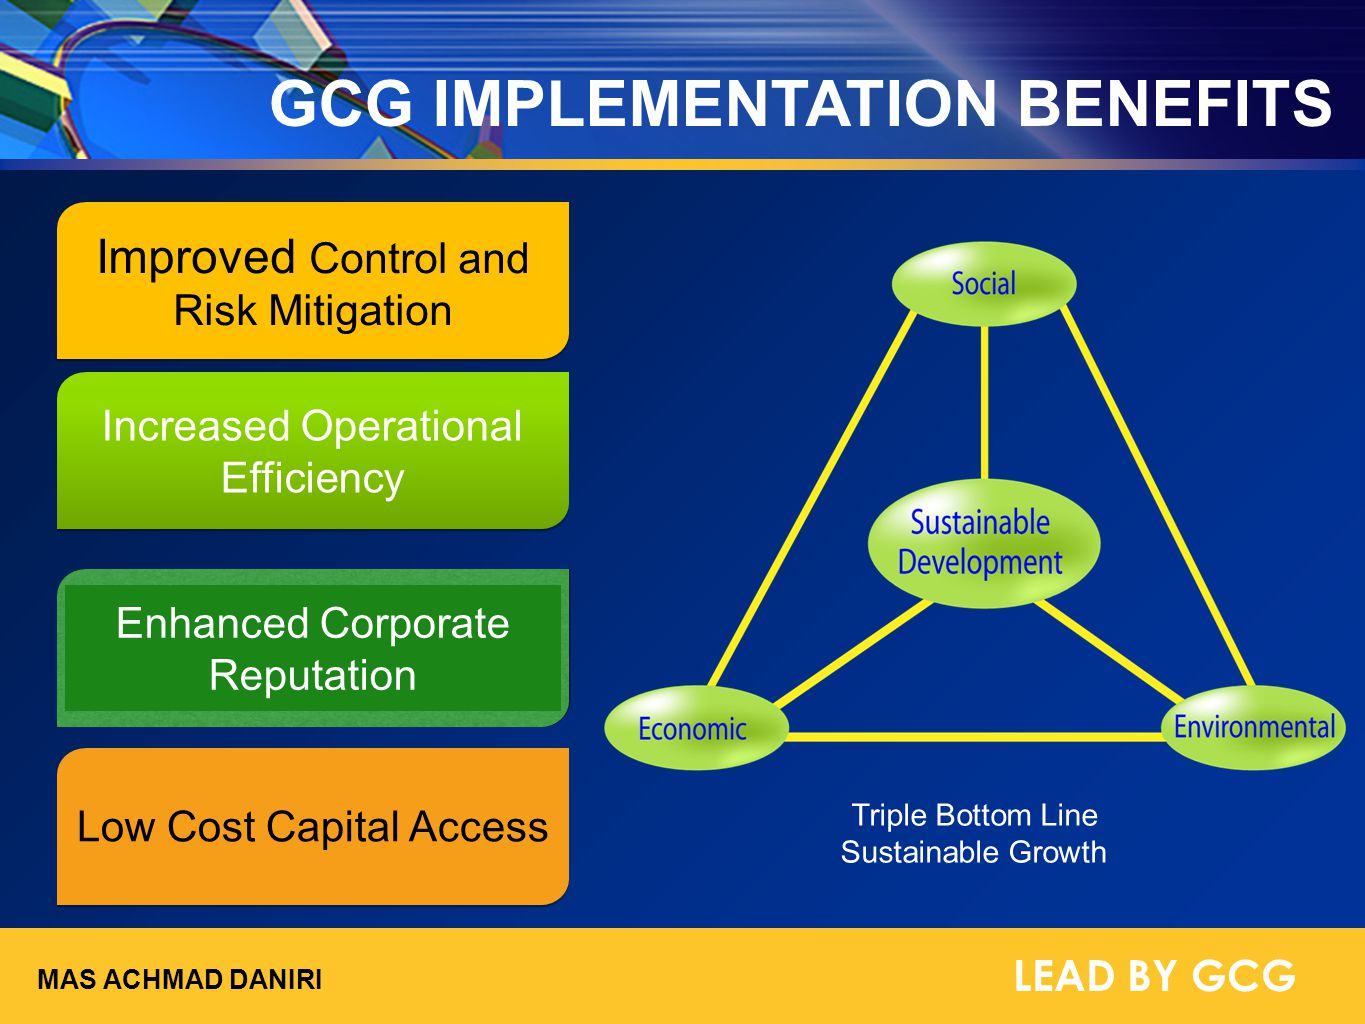 GCG IMPLEMENTATION BENEFITS